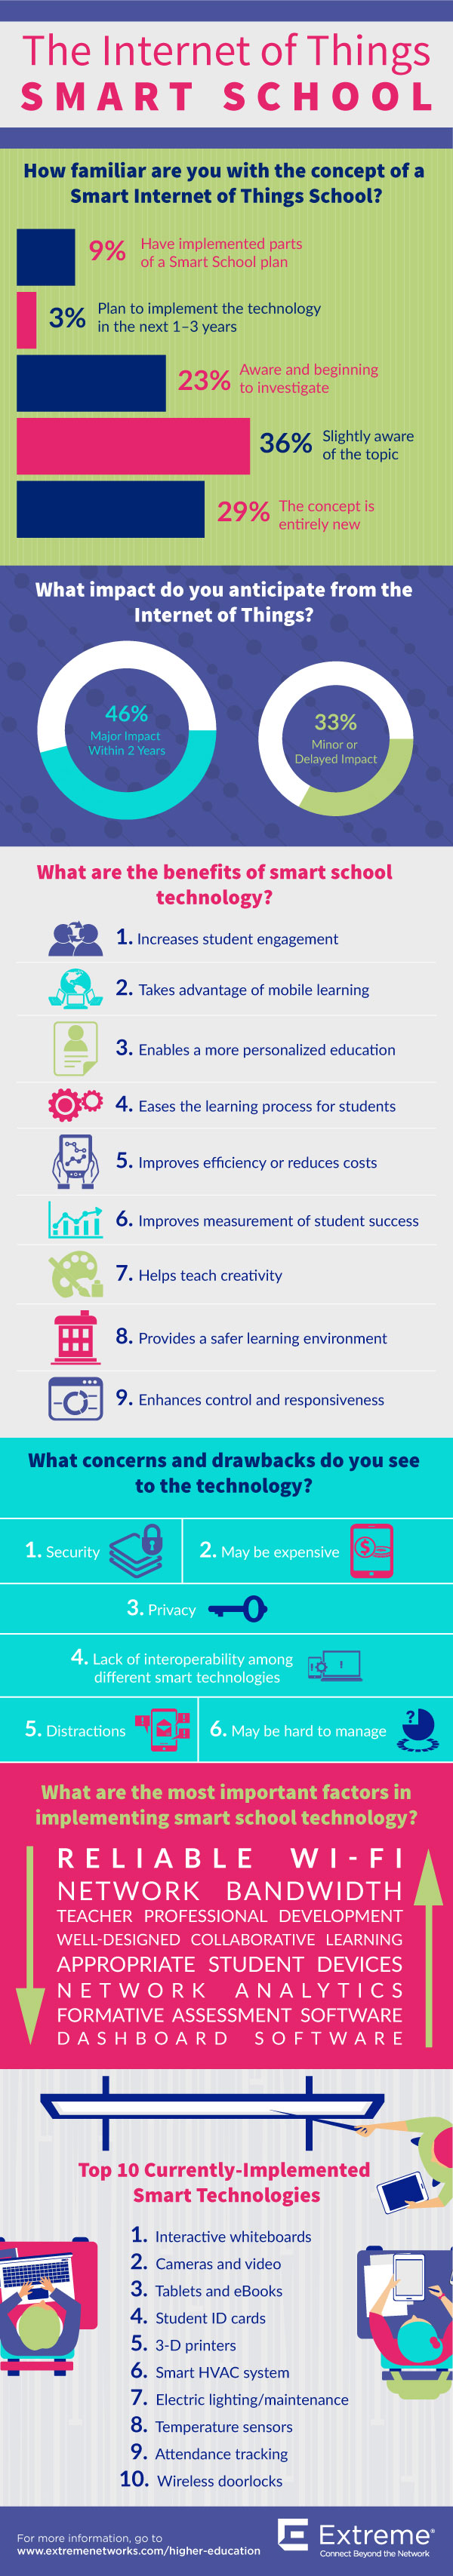 mobility is driving the internet of things smart school [infographic